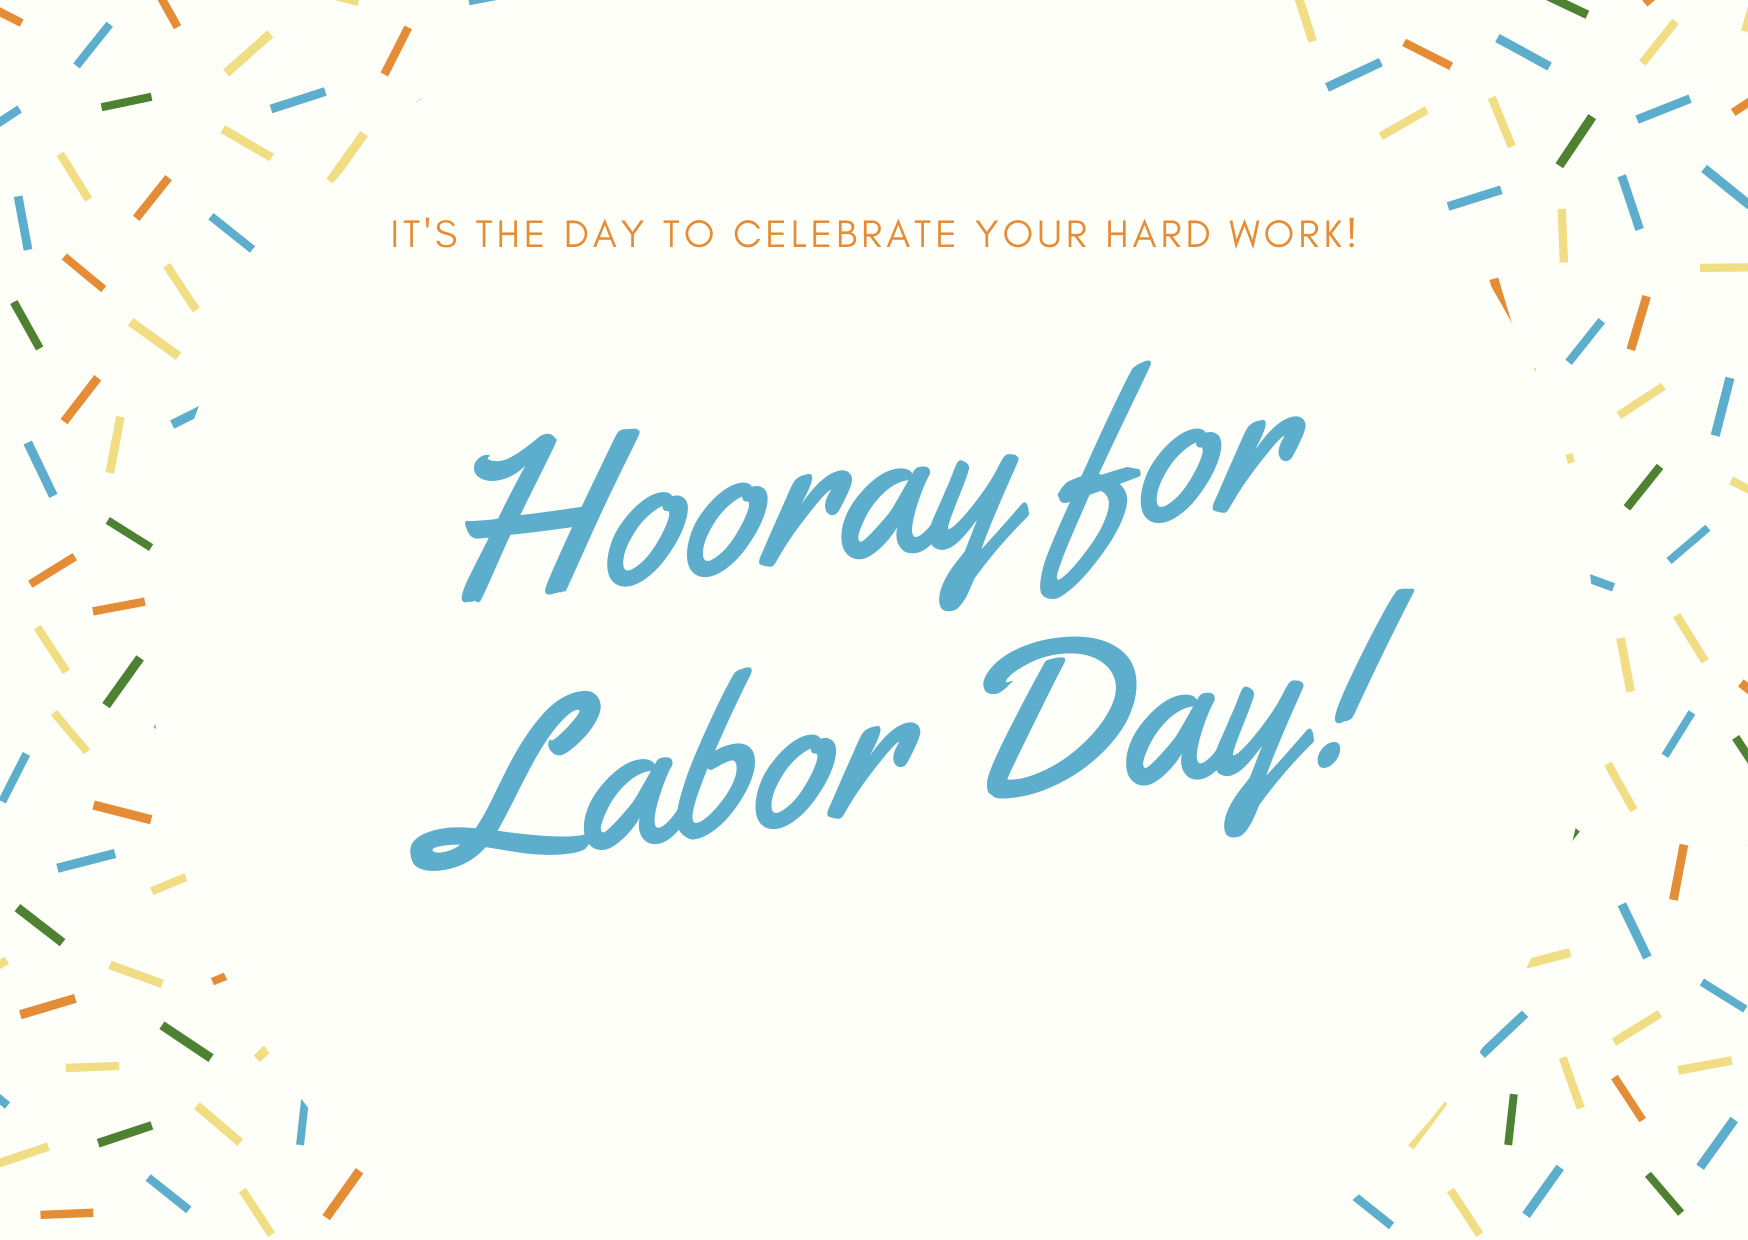 It's the day to celebrate your hard work. Hooray for Labor Day!